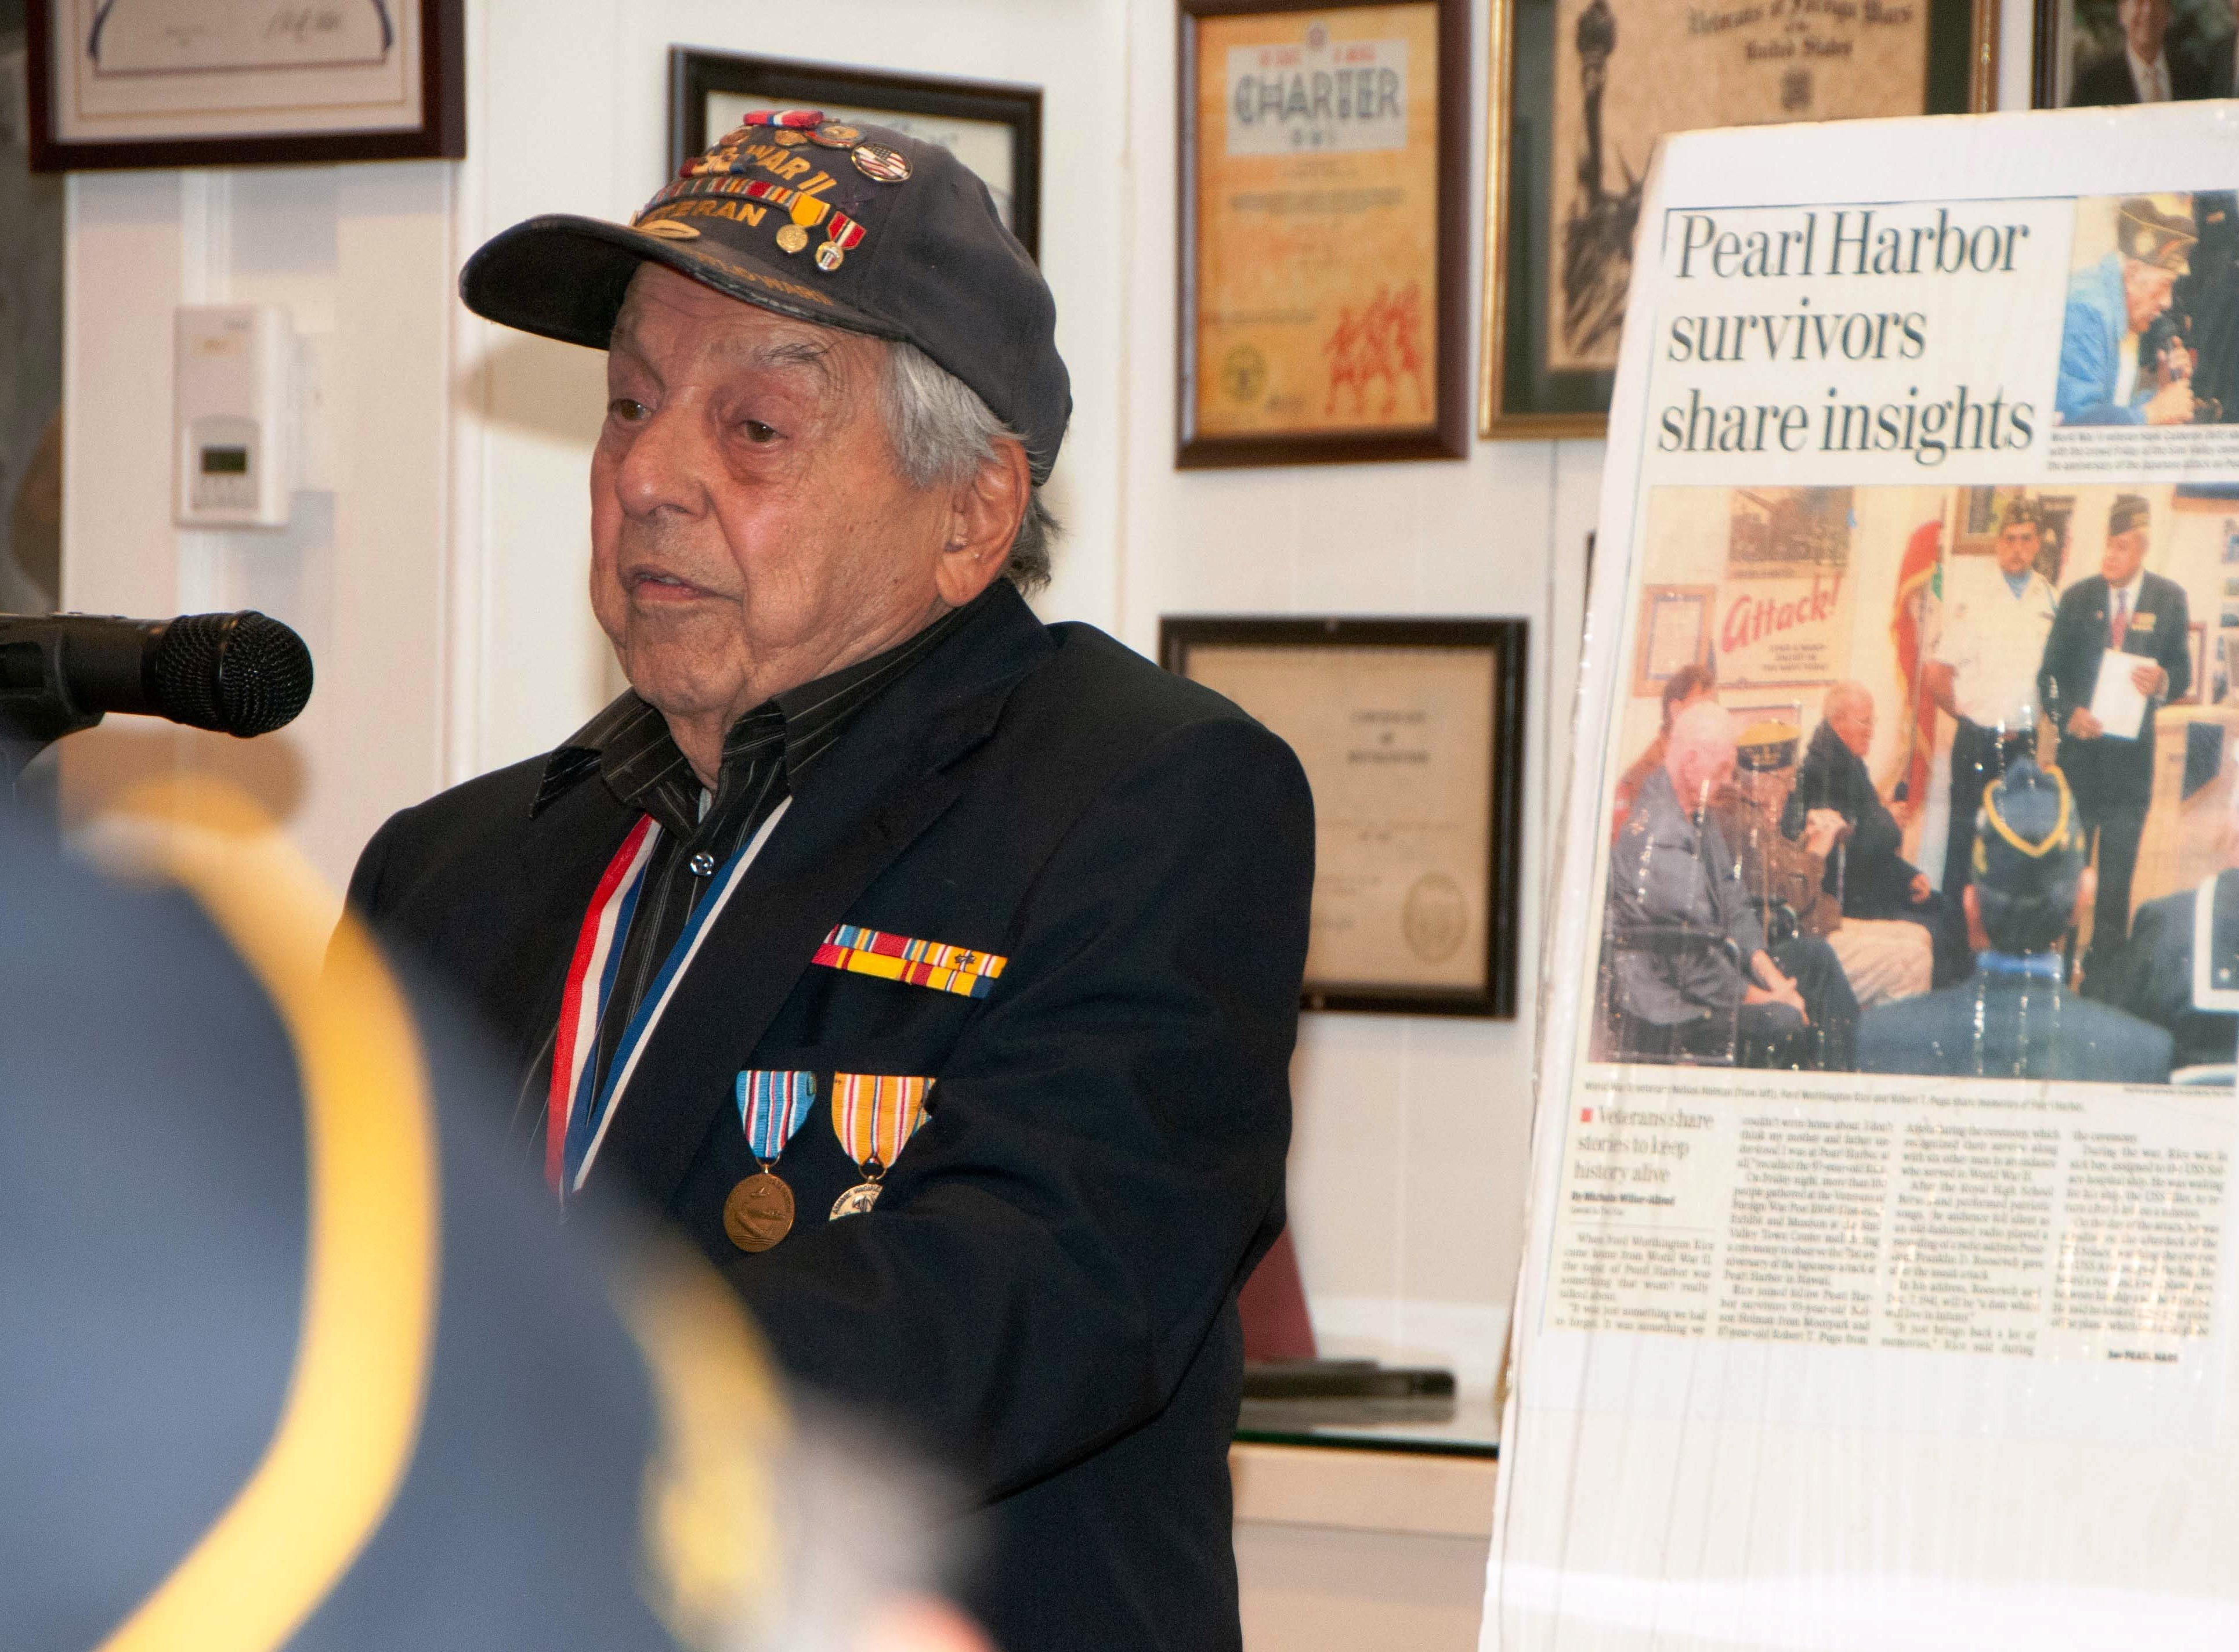 Barney P. Leone, a 94-year-old veteran of World War II, was a guest speaker during a commemoration of the 77th anniversary of the attack at Pearl Harbor, Hawaii. The event took place at the VFW Museum of Military History in Simi Valley on Dec. 7.